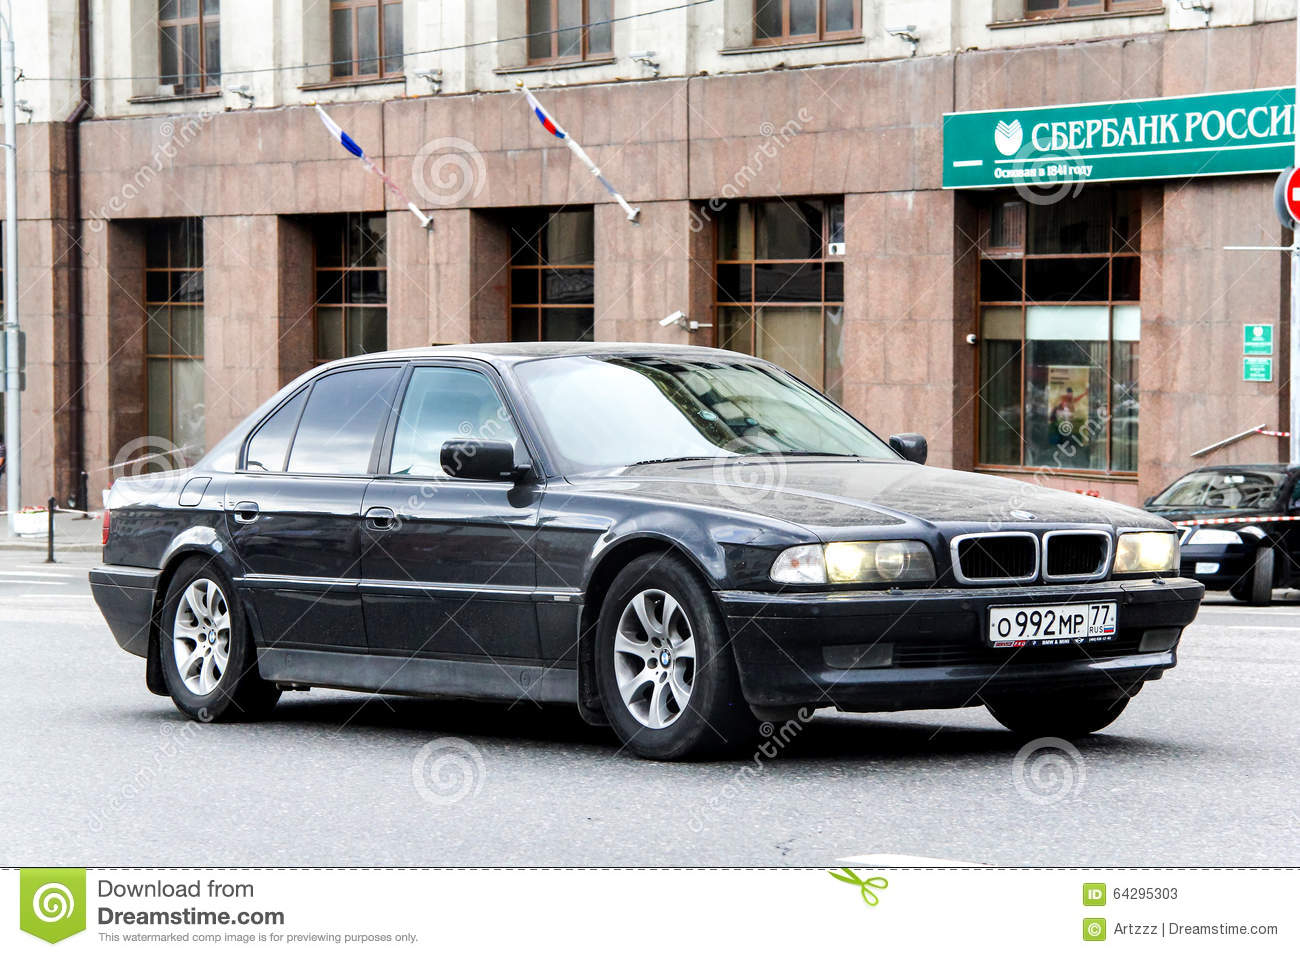 hight resolution of moscow russia june 2 2013 motor car bmw e38 7 series at the city street